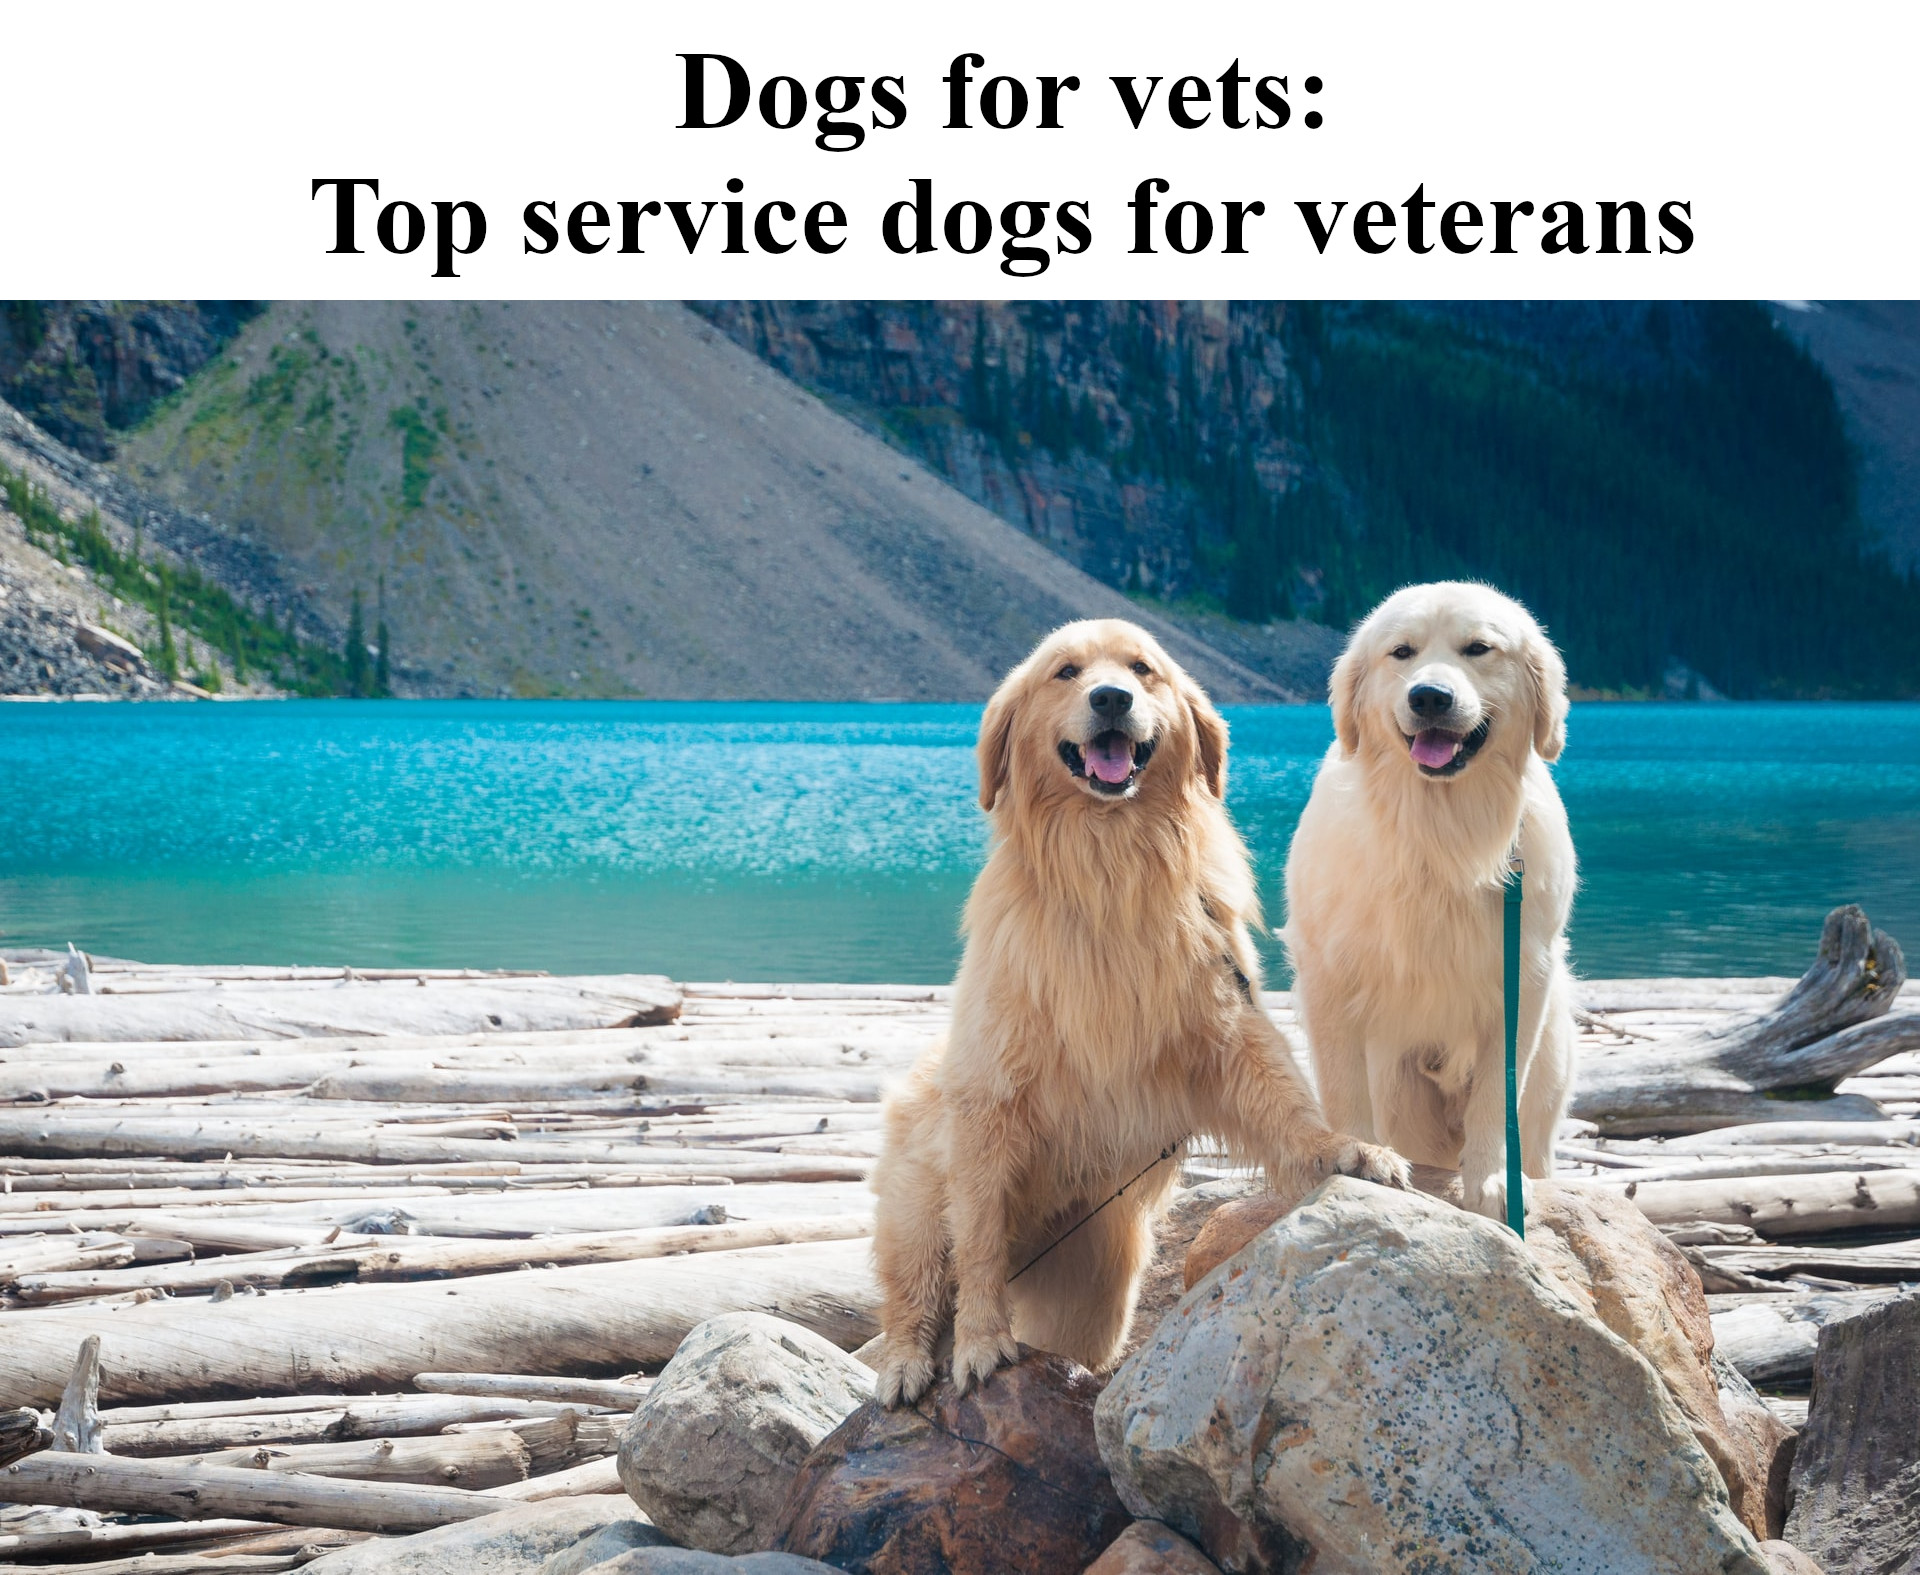 Dogs for vets: Top service dogs for veterans